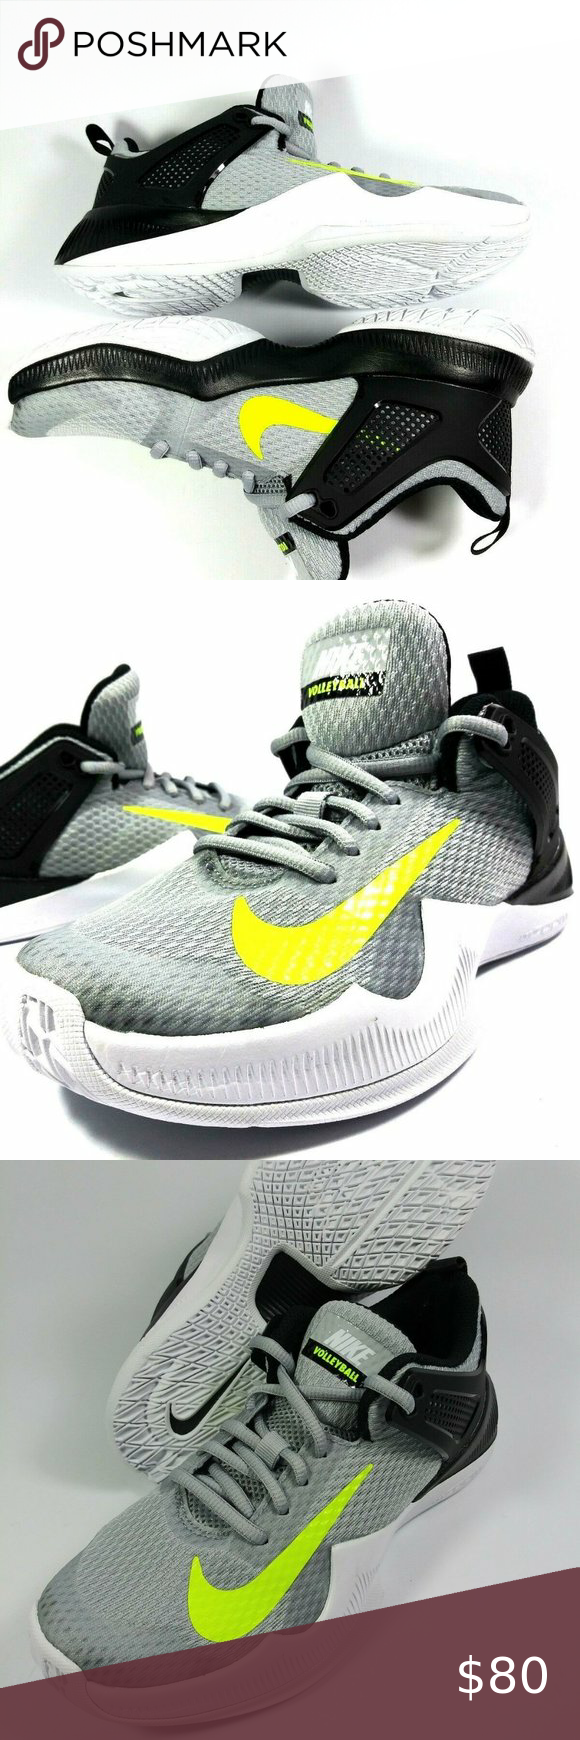 Nike Womens Sz 6 902367 007 Volleyball Shoes Nwt In 2020 Volleyball Shoes Nike Women Nike